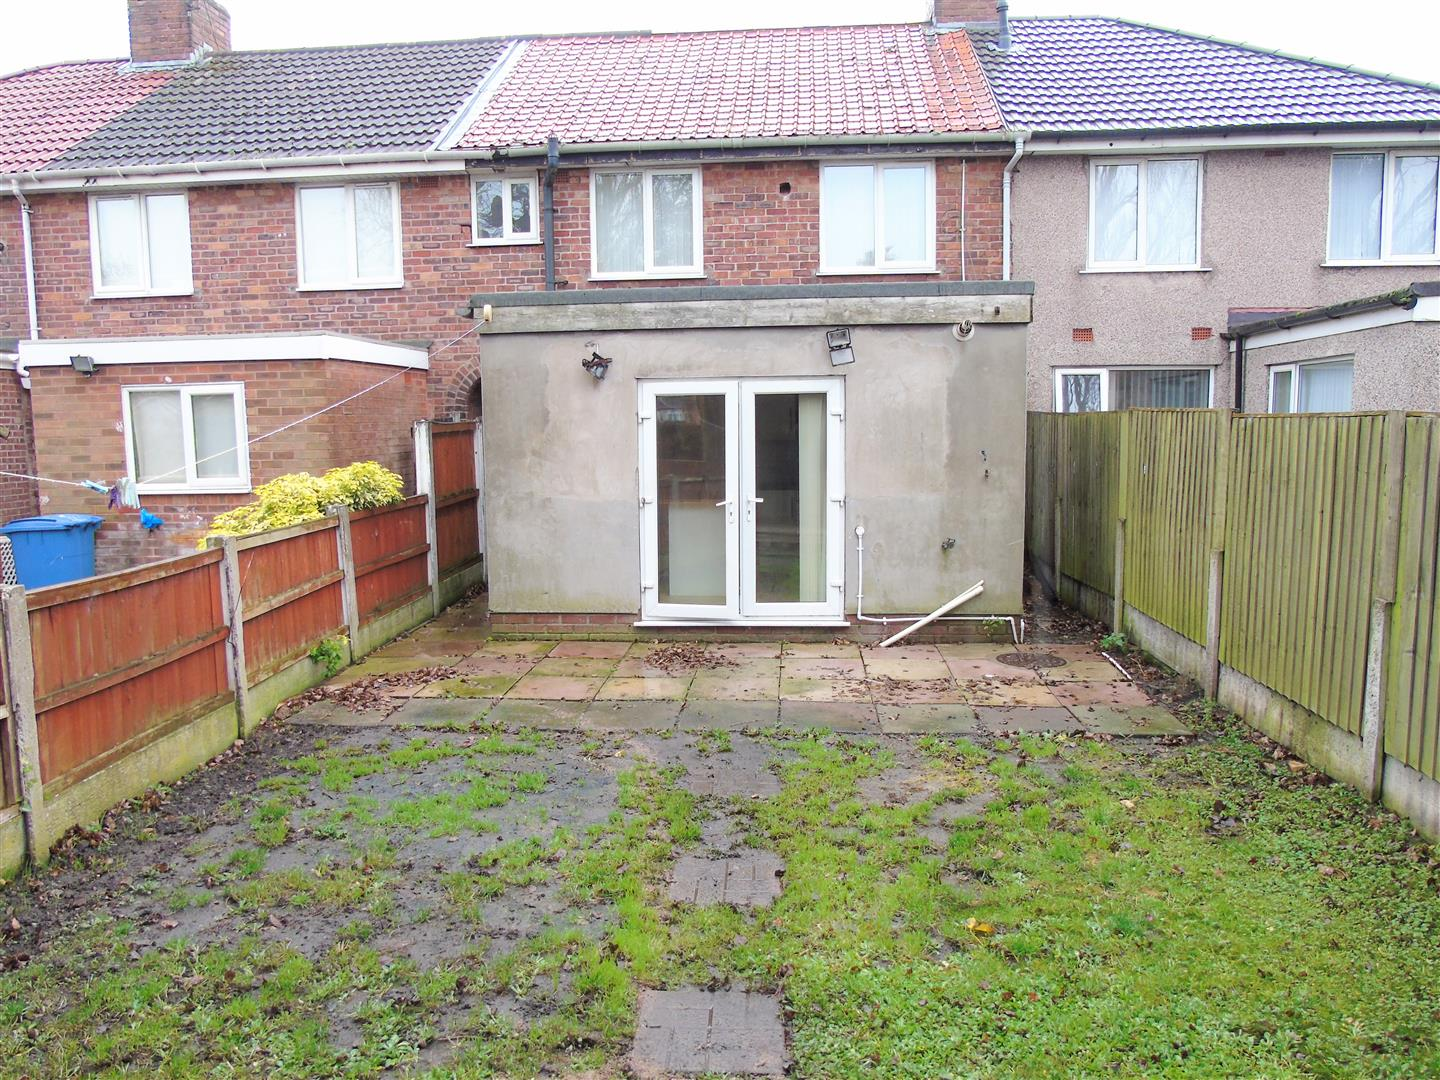 3 Bedrooms, House - Terraced, Dereham Crescent, Fazakerley